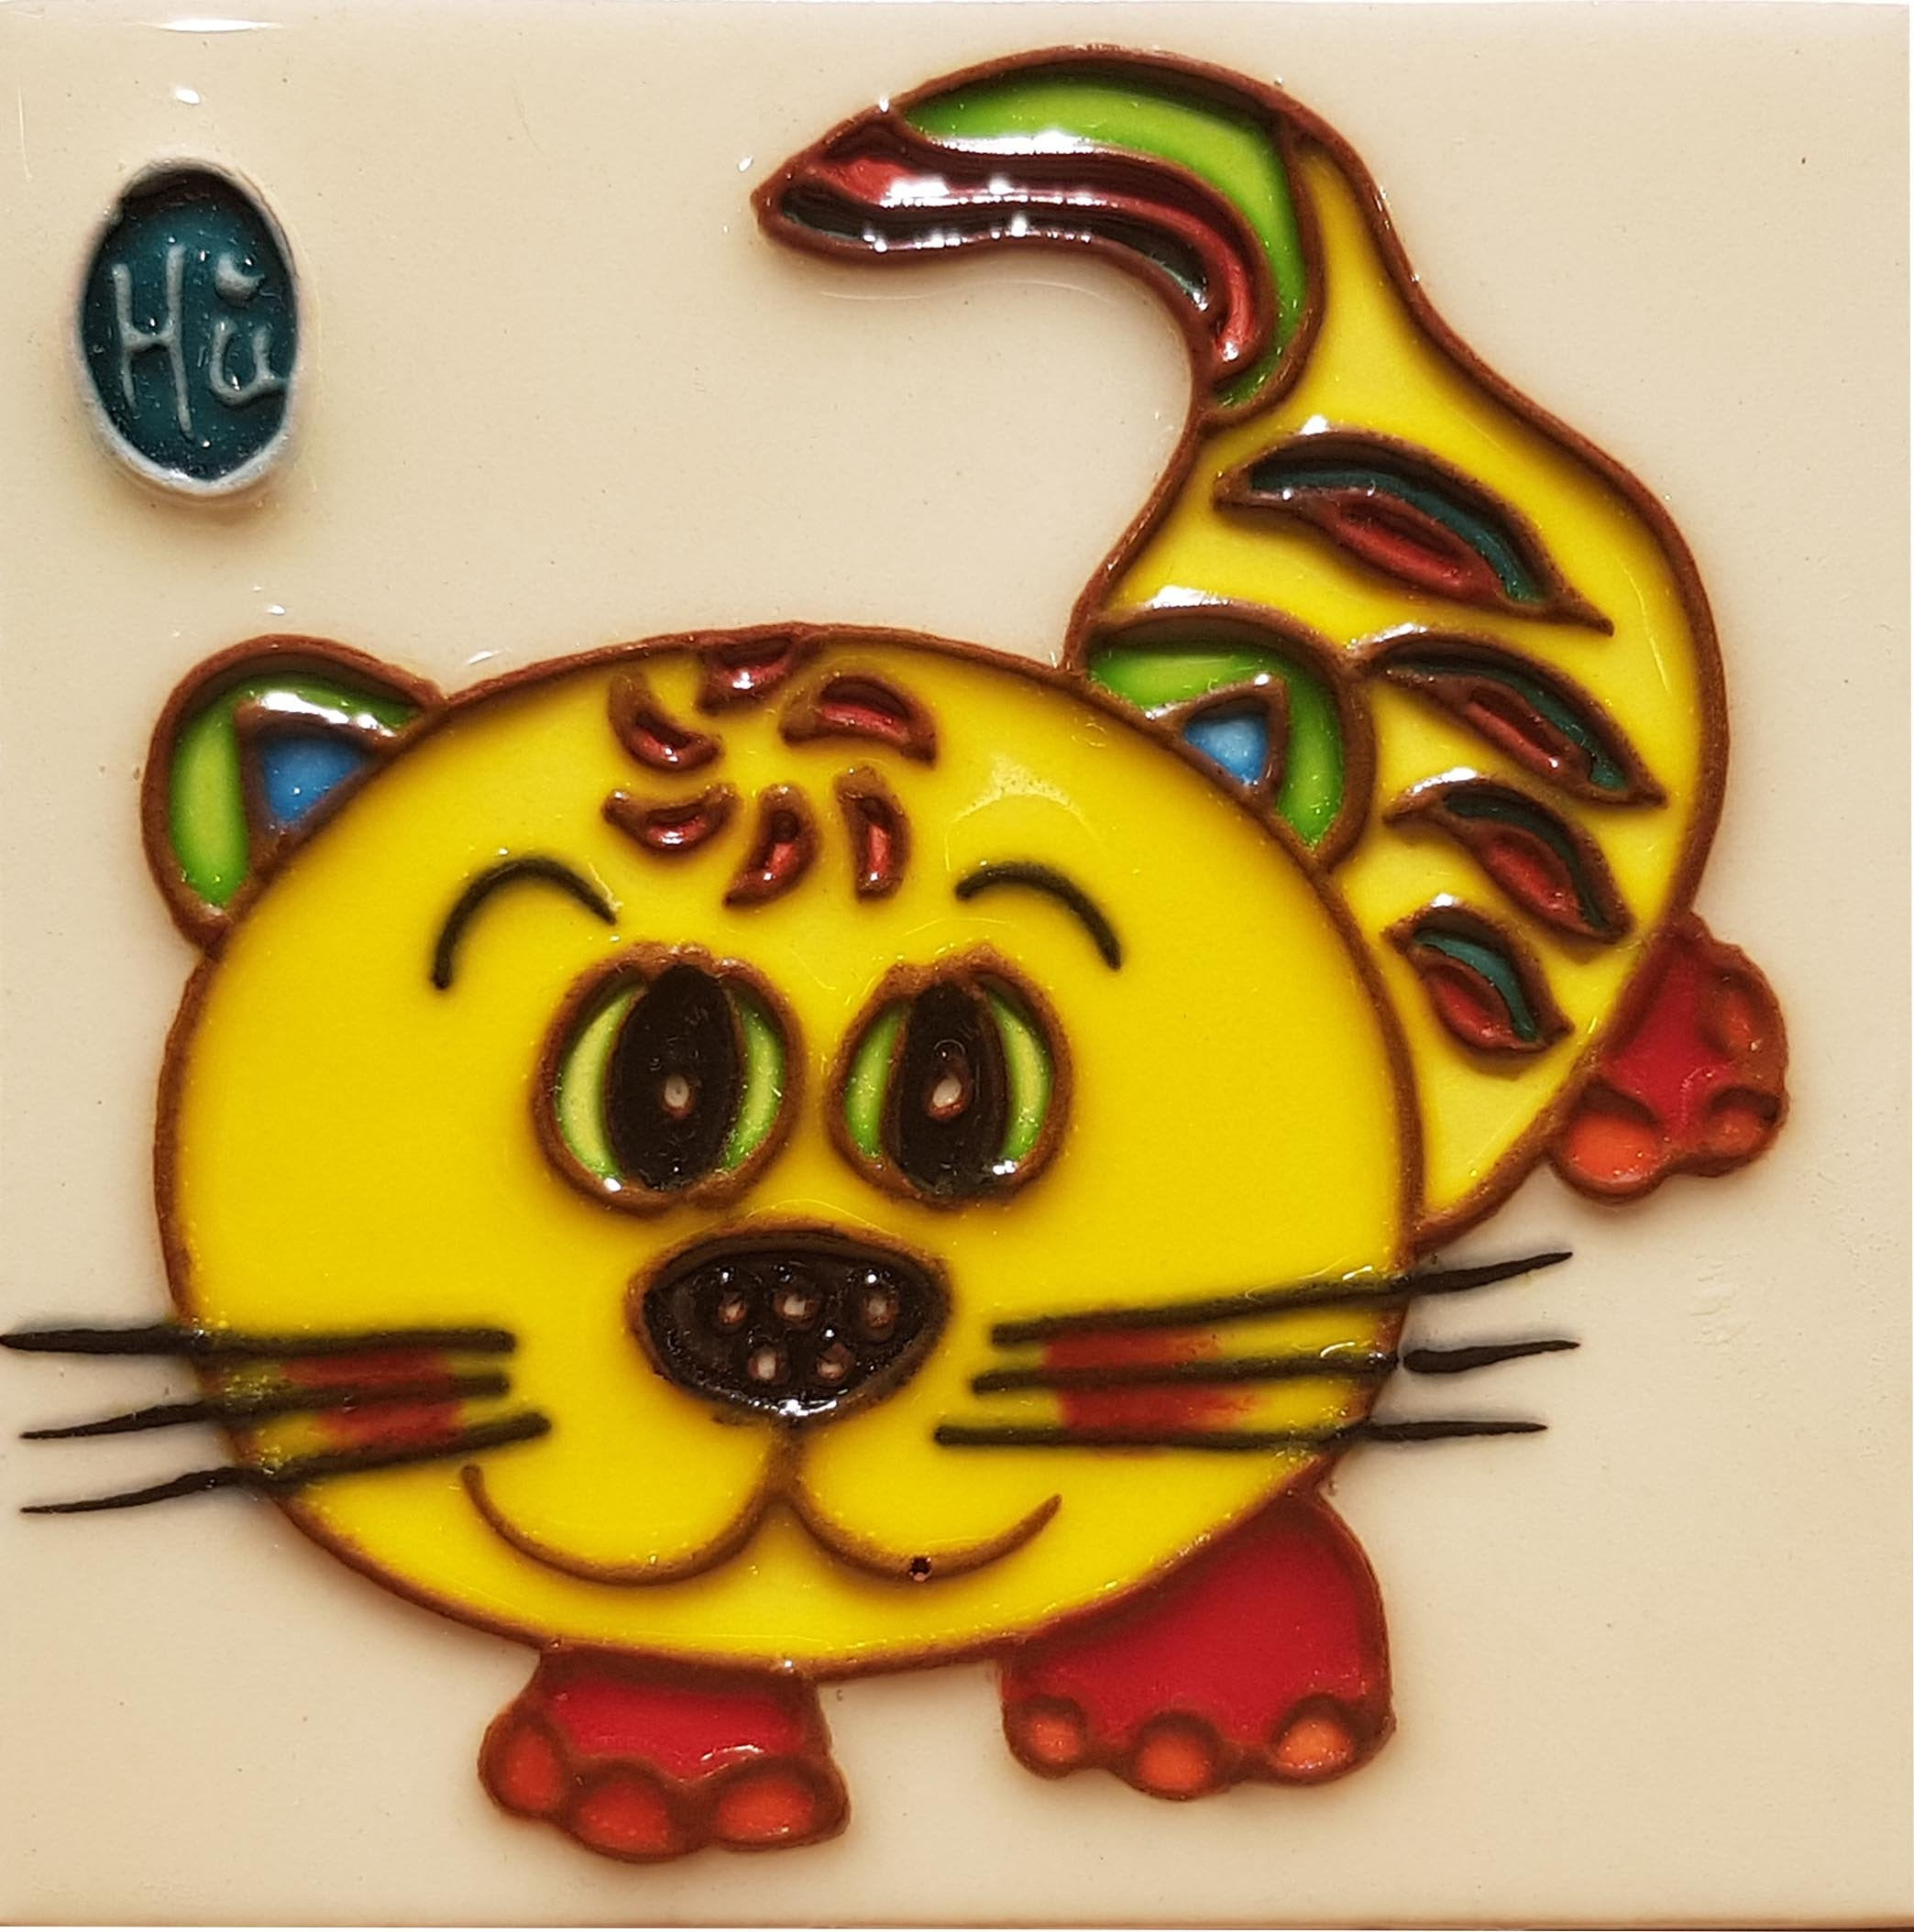 1183 Horoscope Tiger 10cm x 10cm Ceramic Tile